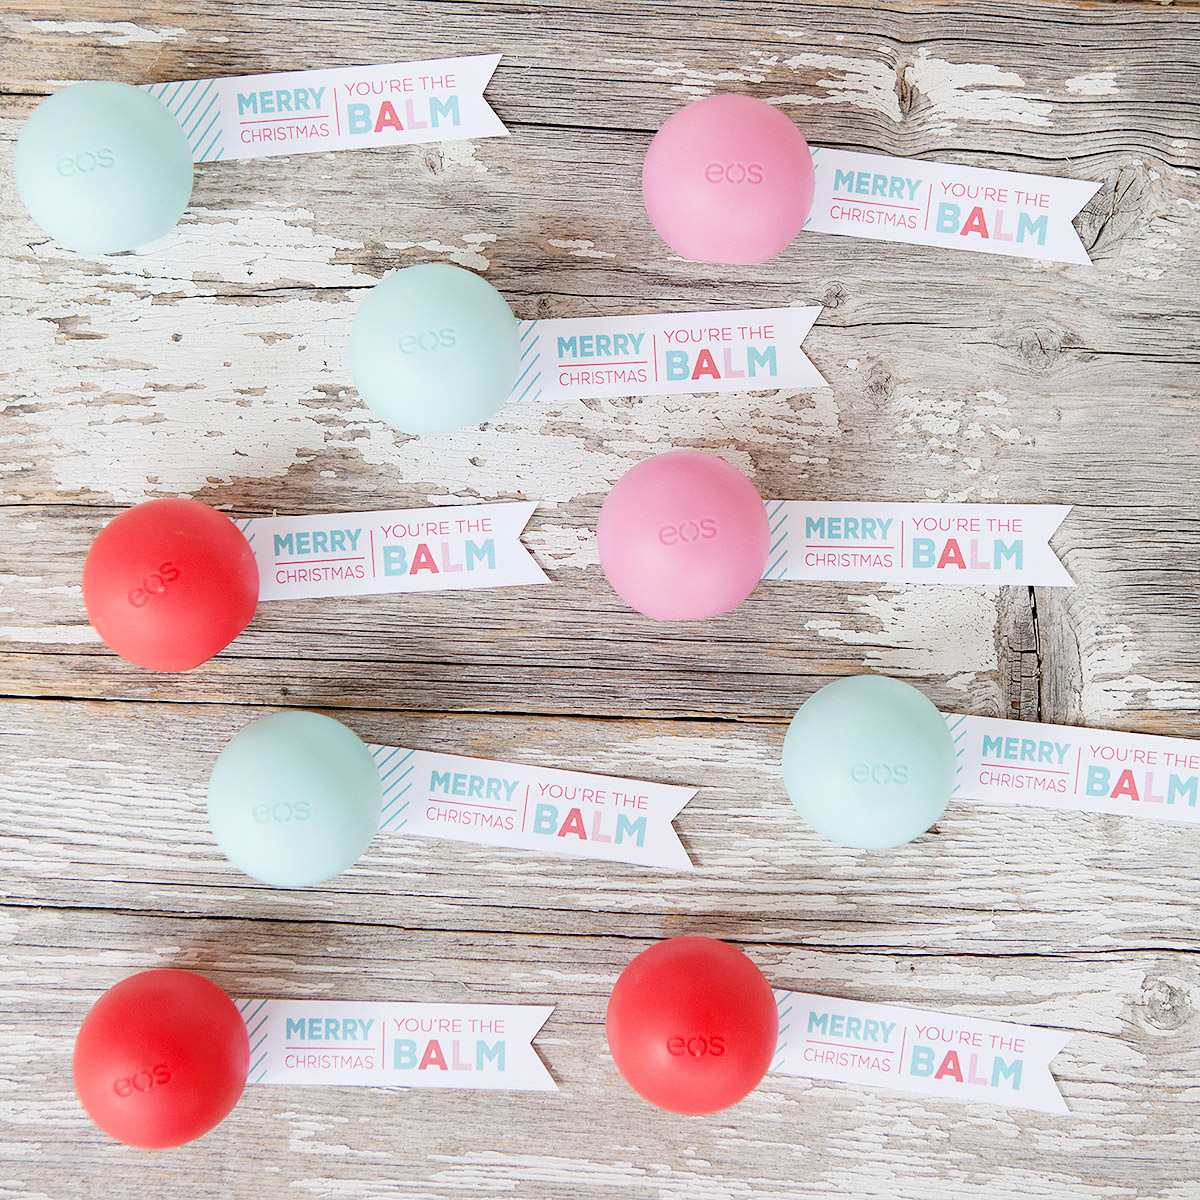 photo about You're the Balm Free Printable named EOS Lip Balm \